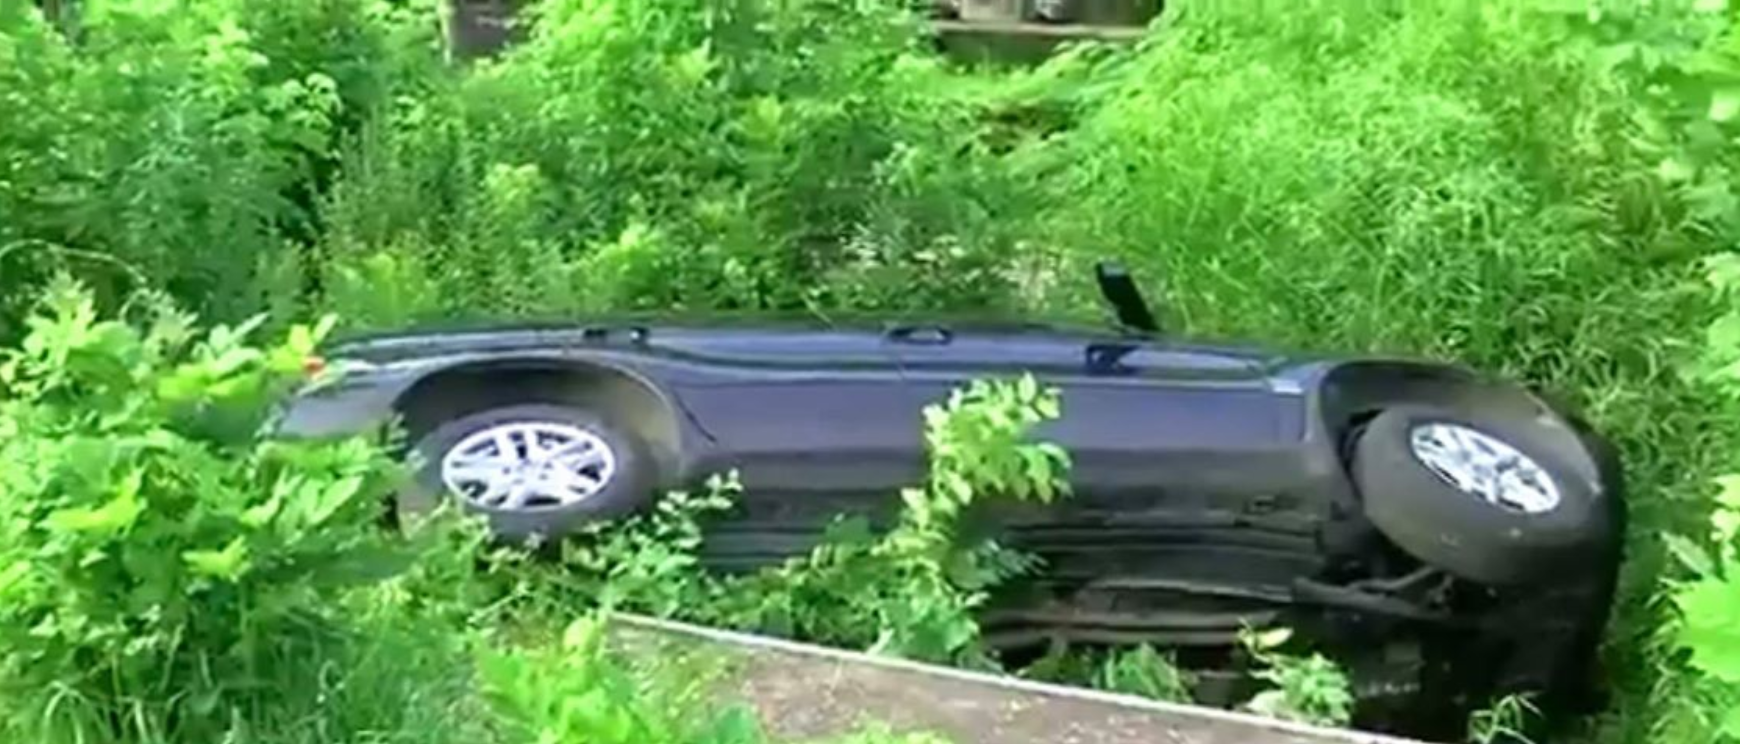 Center Point Fire responds to car in pool off Old Springville Road